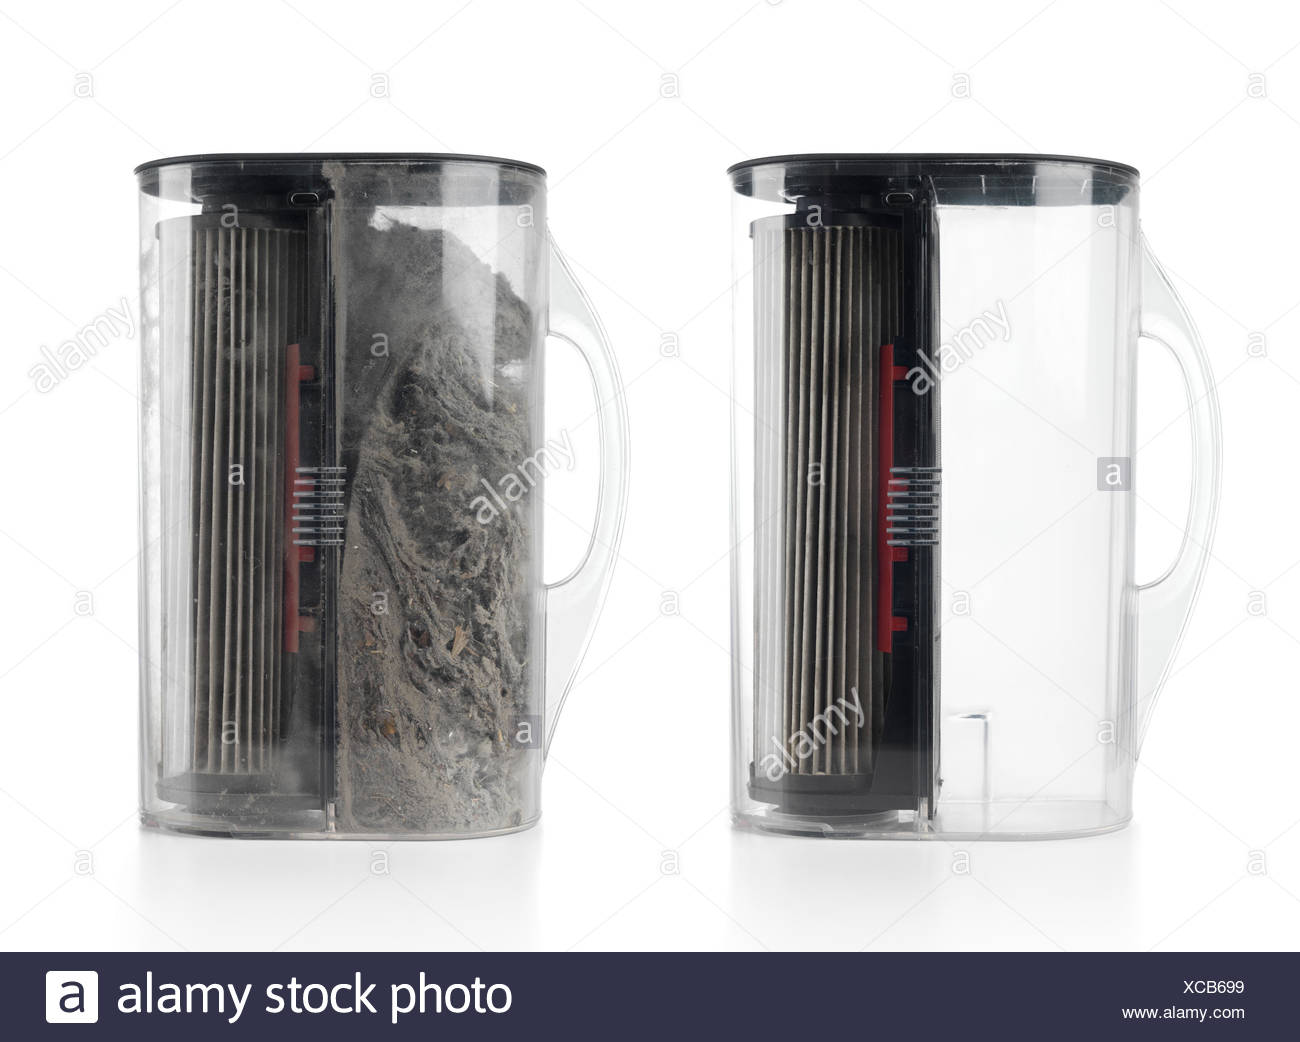 Vacuum cleaner filters, one empty and clean, and one full of dust - Stock Image